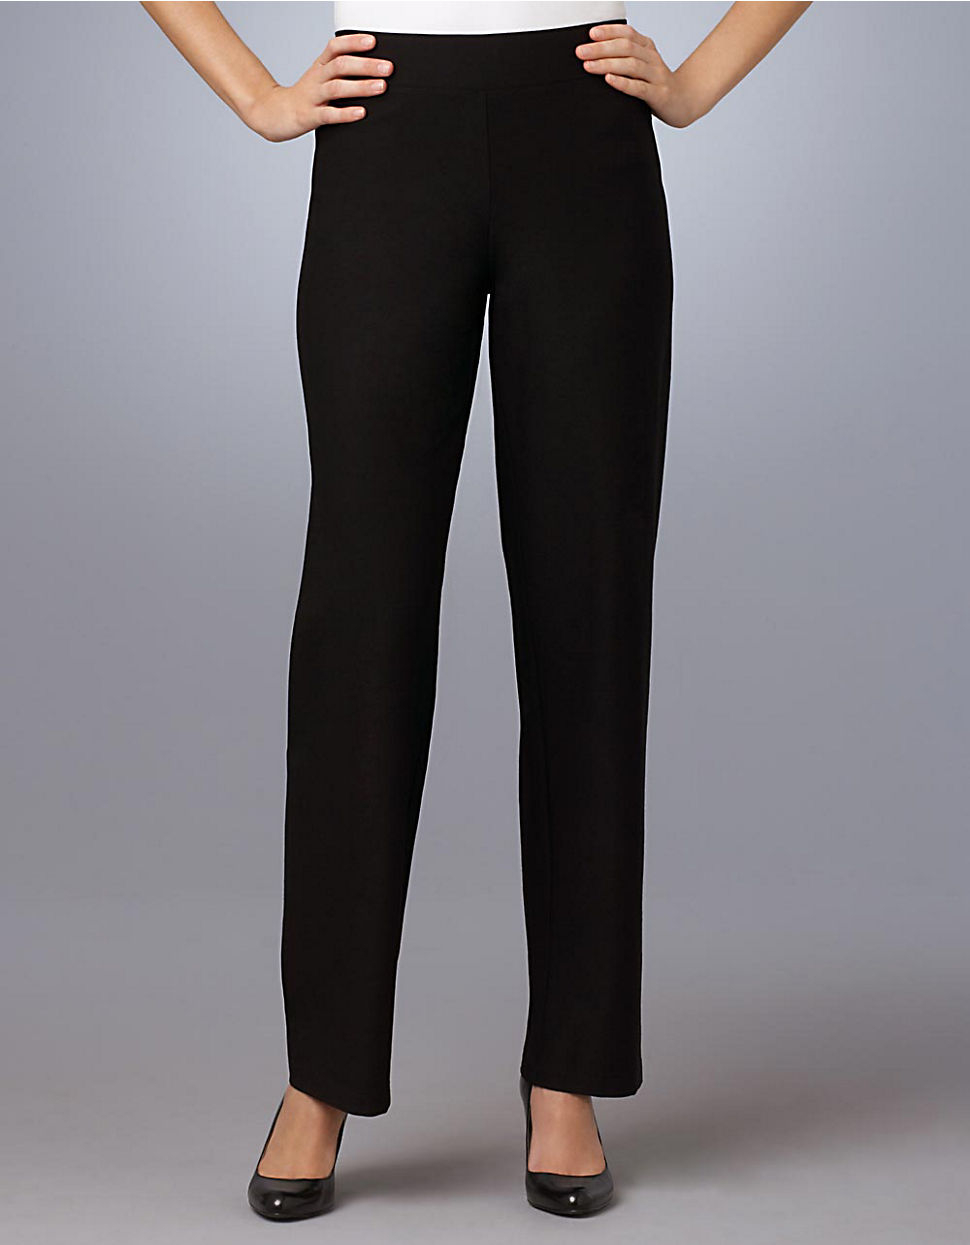 ASOS DESIGN Petite chino trousers in black. £ ASOS DESIGN Petite high waist trousers in skinny fit. £ Miss Selfridge Petite paperbag waist trousers in grey check. £ MIX & MATCH. Sisters Of The Tribe split leg trousers co-ord. £ New Look Petite Side Stripe Piping Pull On Trousers.